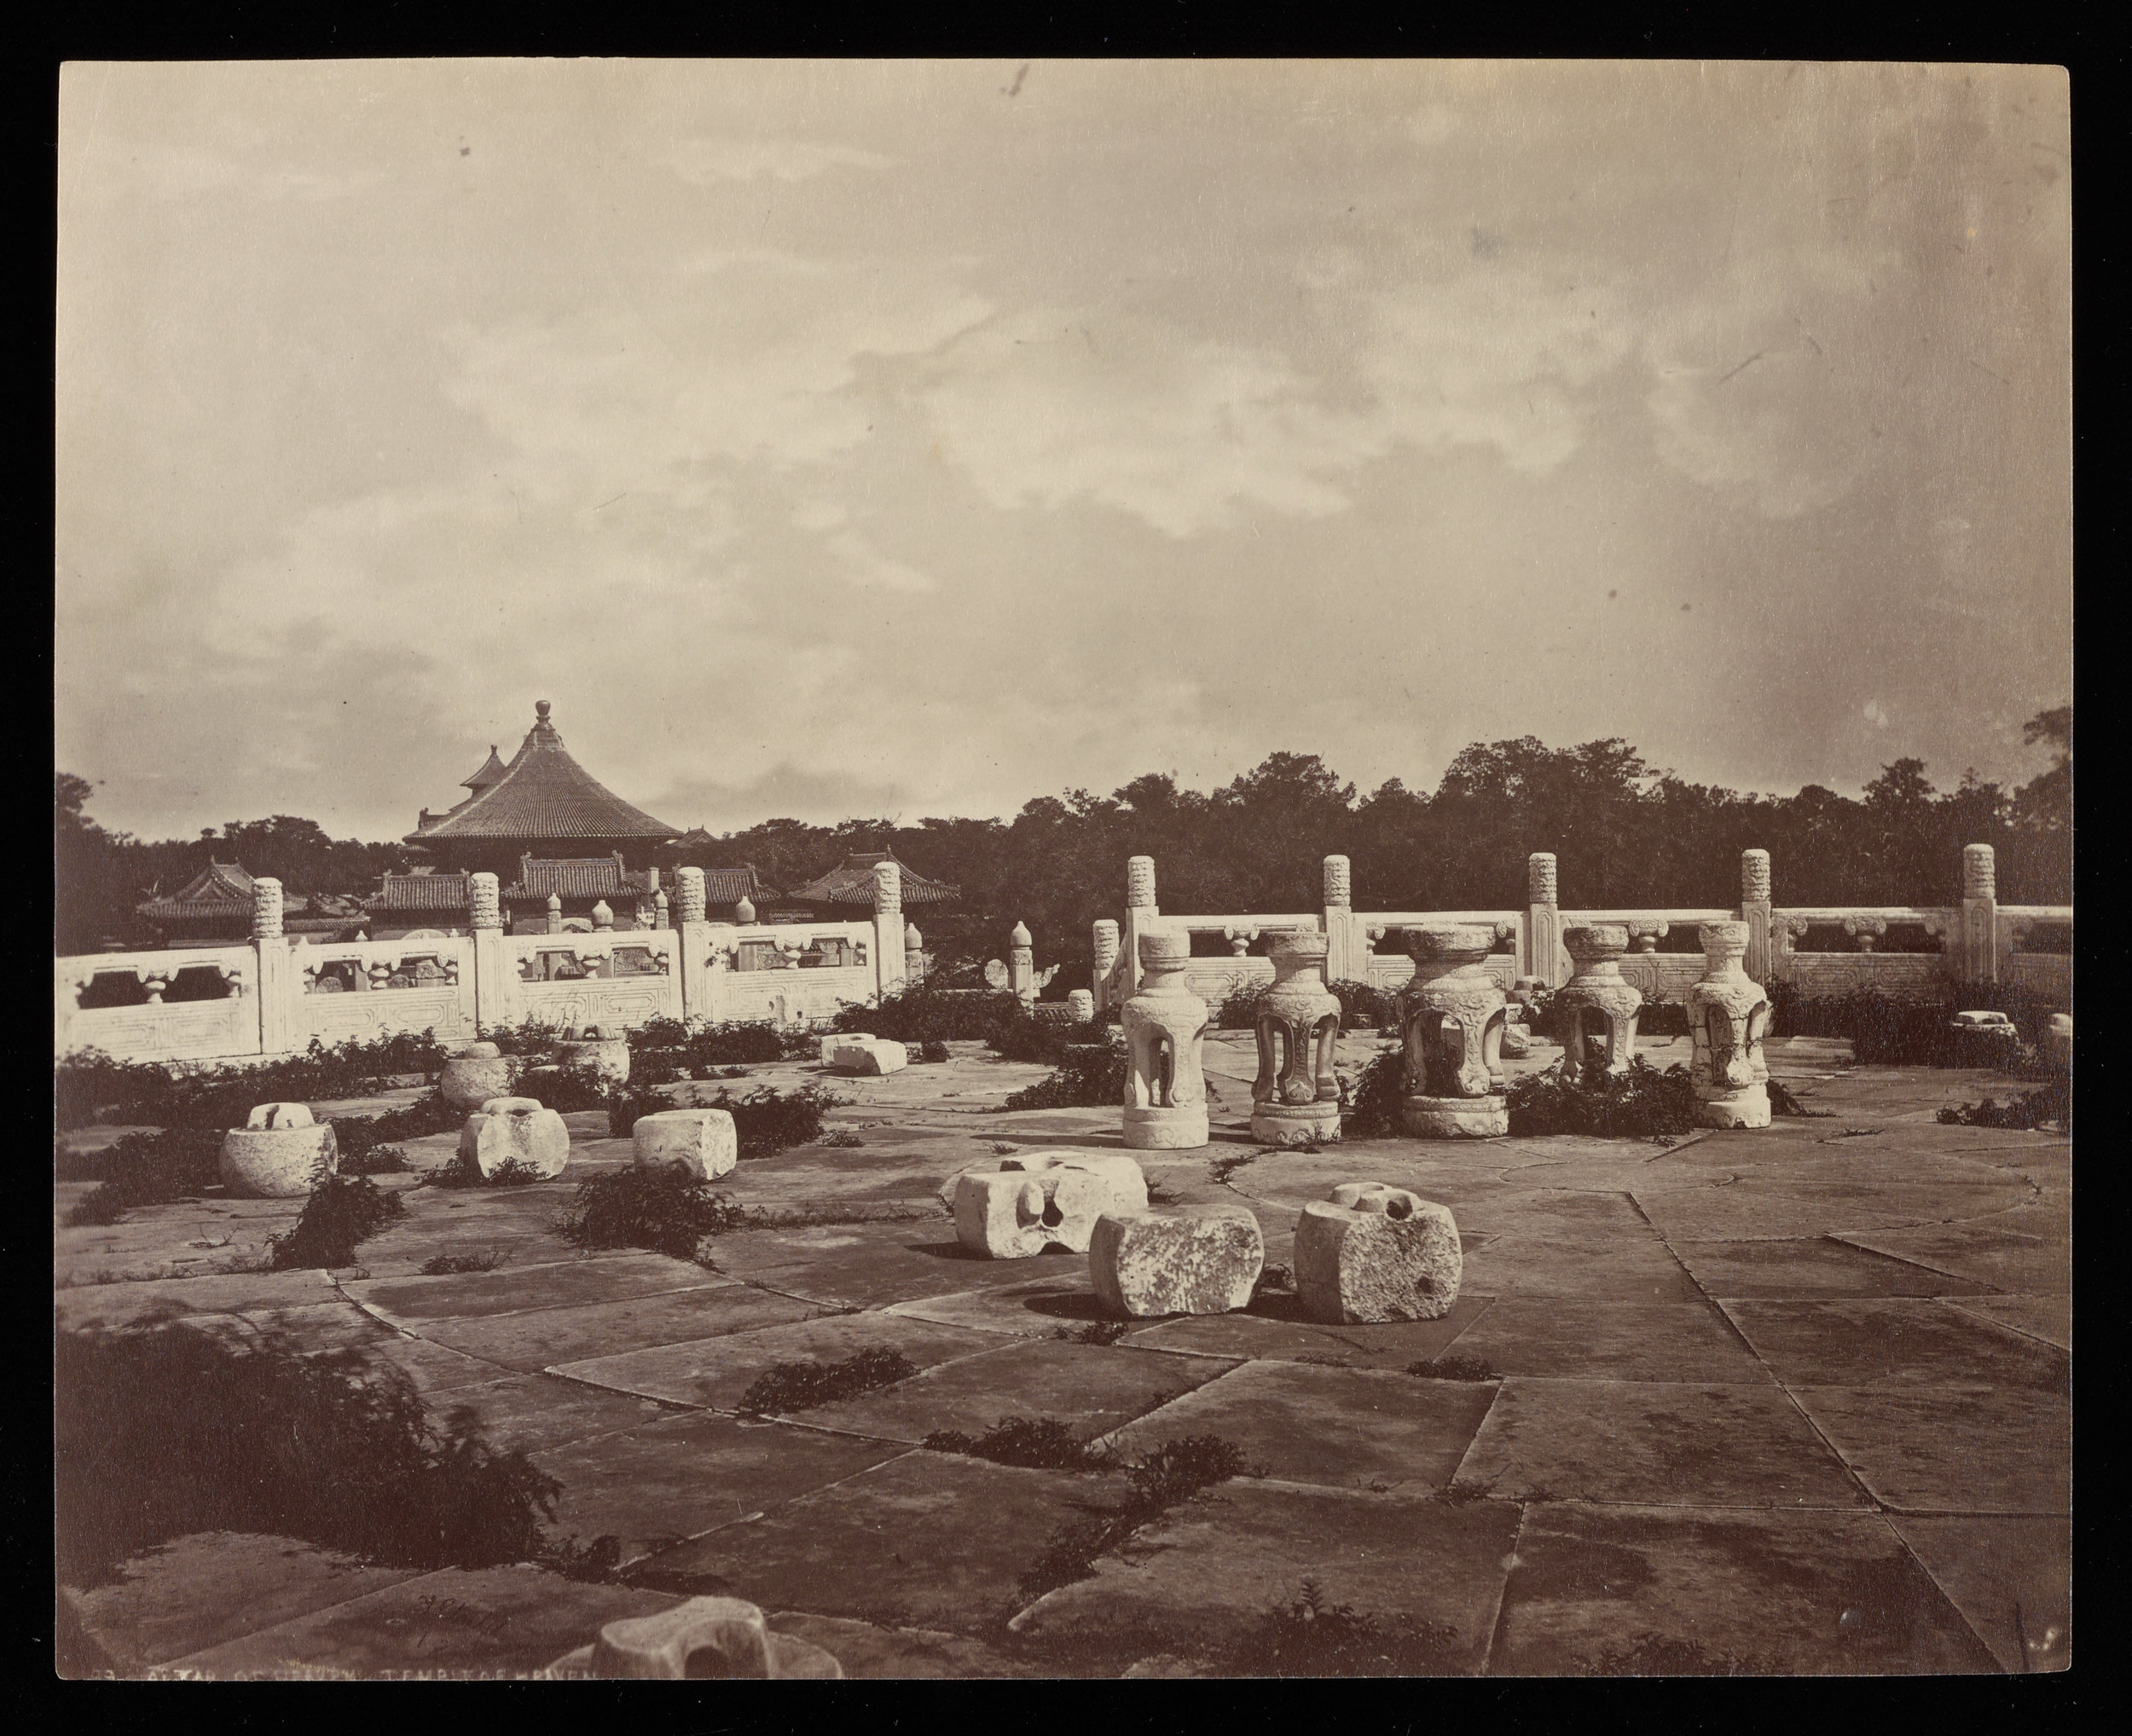 Altar of Heaven, Temple of Heaven , Thomas Child Getty Research Institute, c. 1870s